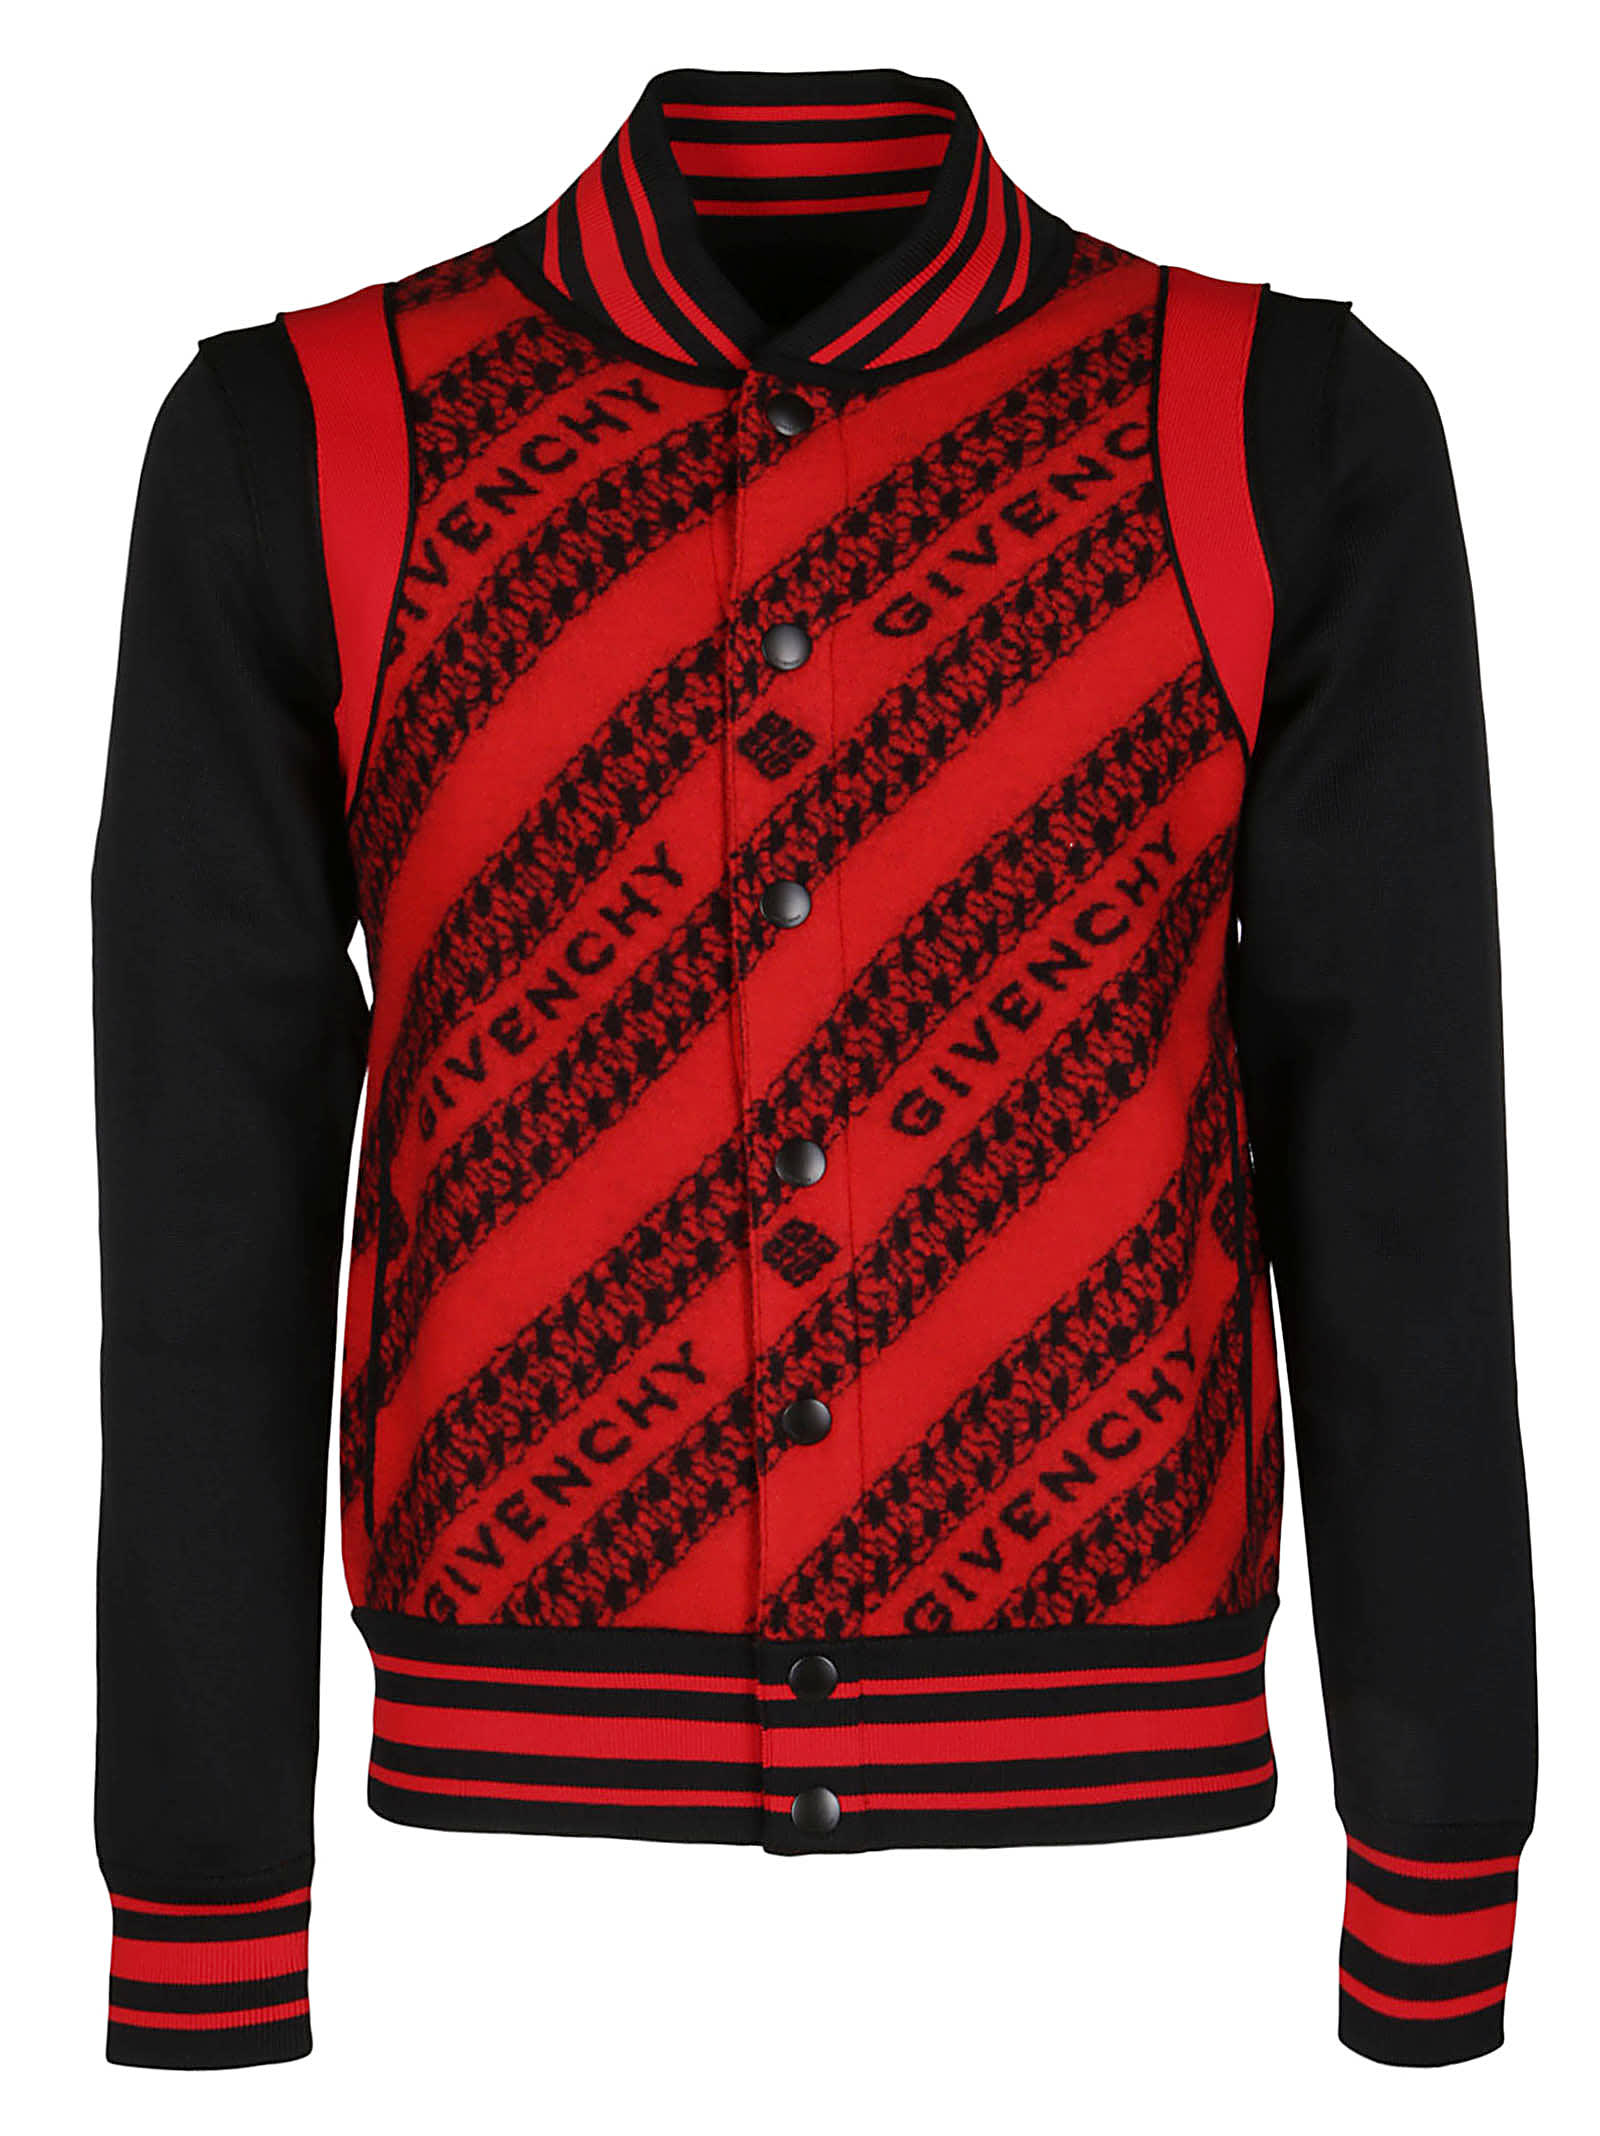 Givenchy Red And Black Wool Jacket